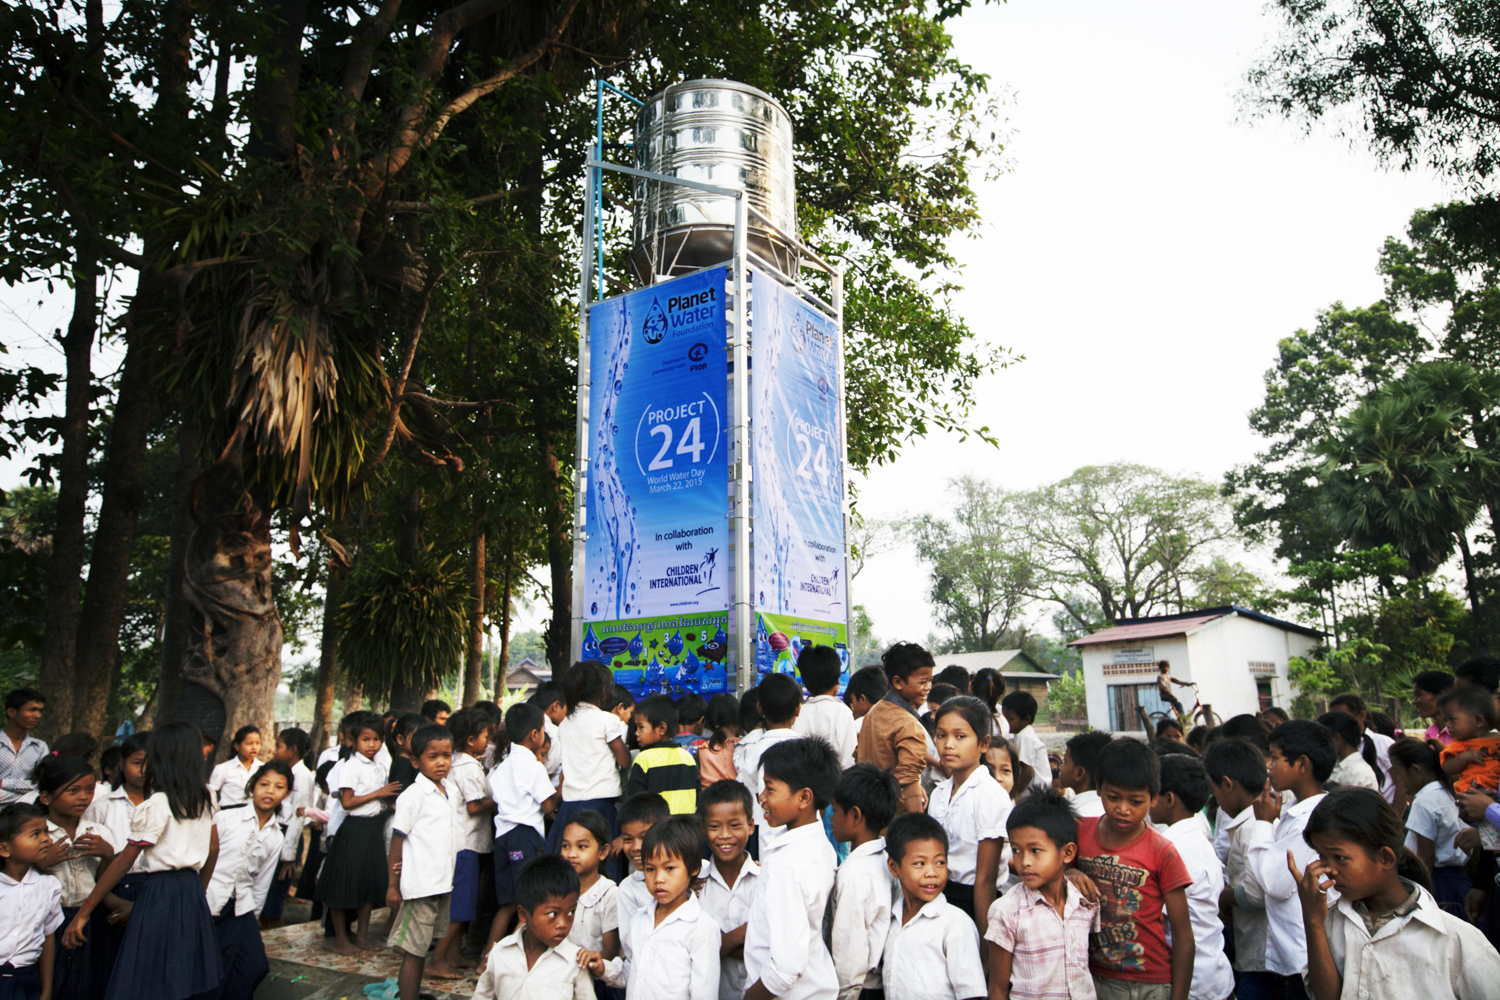 planetwater-18.jpg